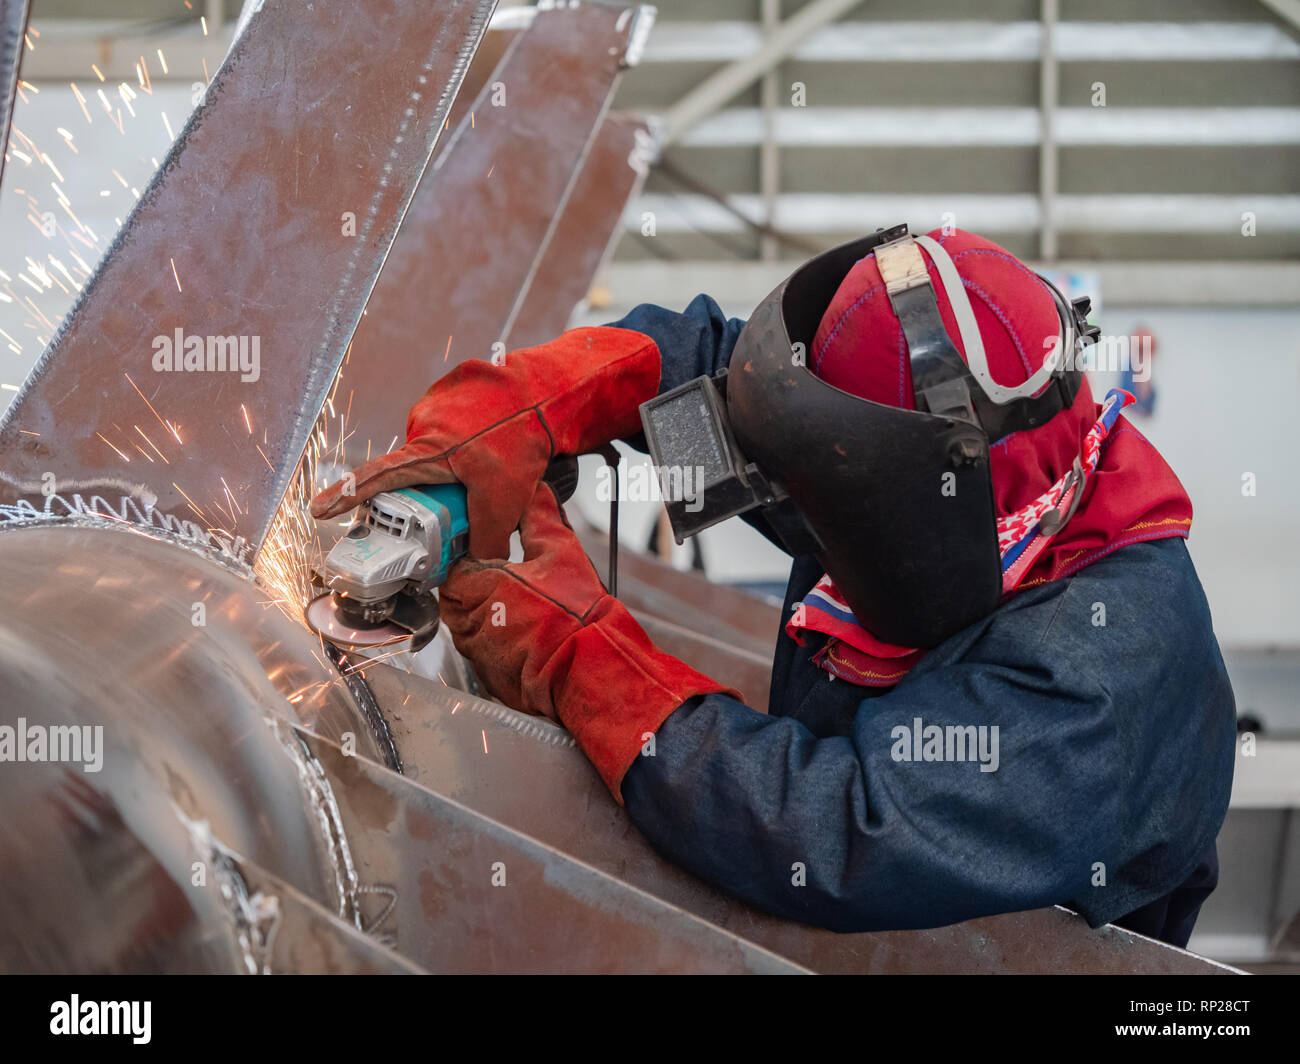 Industrial worker wearing a welding mask using an angle grinder on a steel structure. Stock Photo